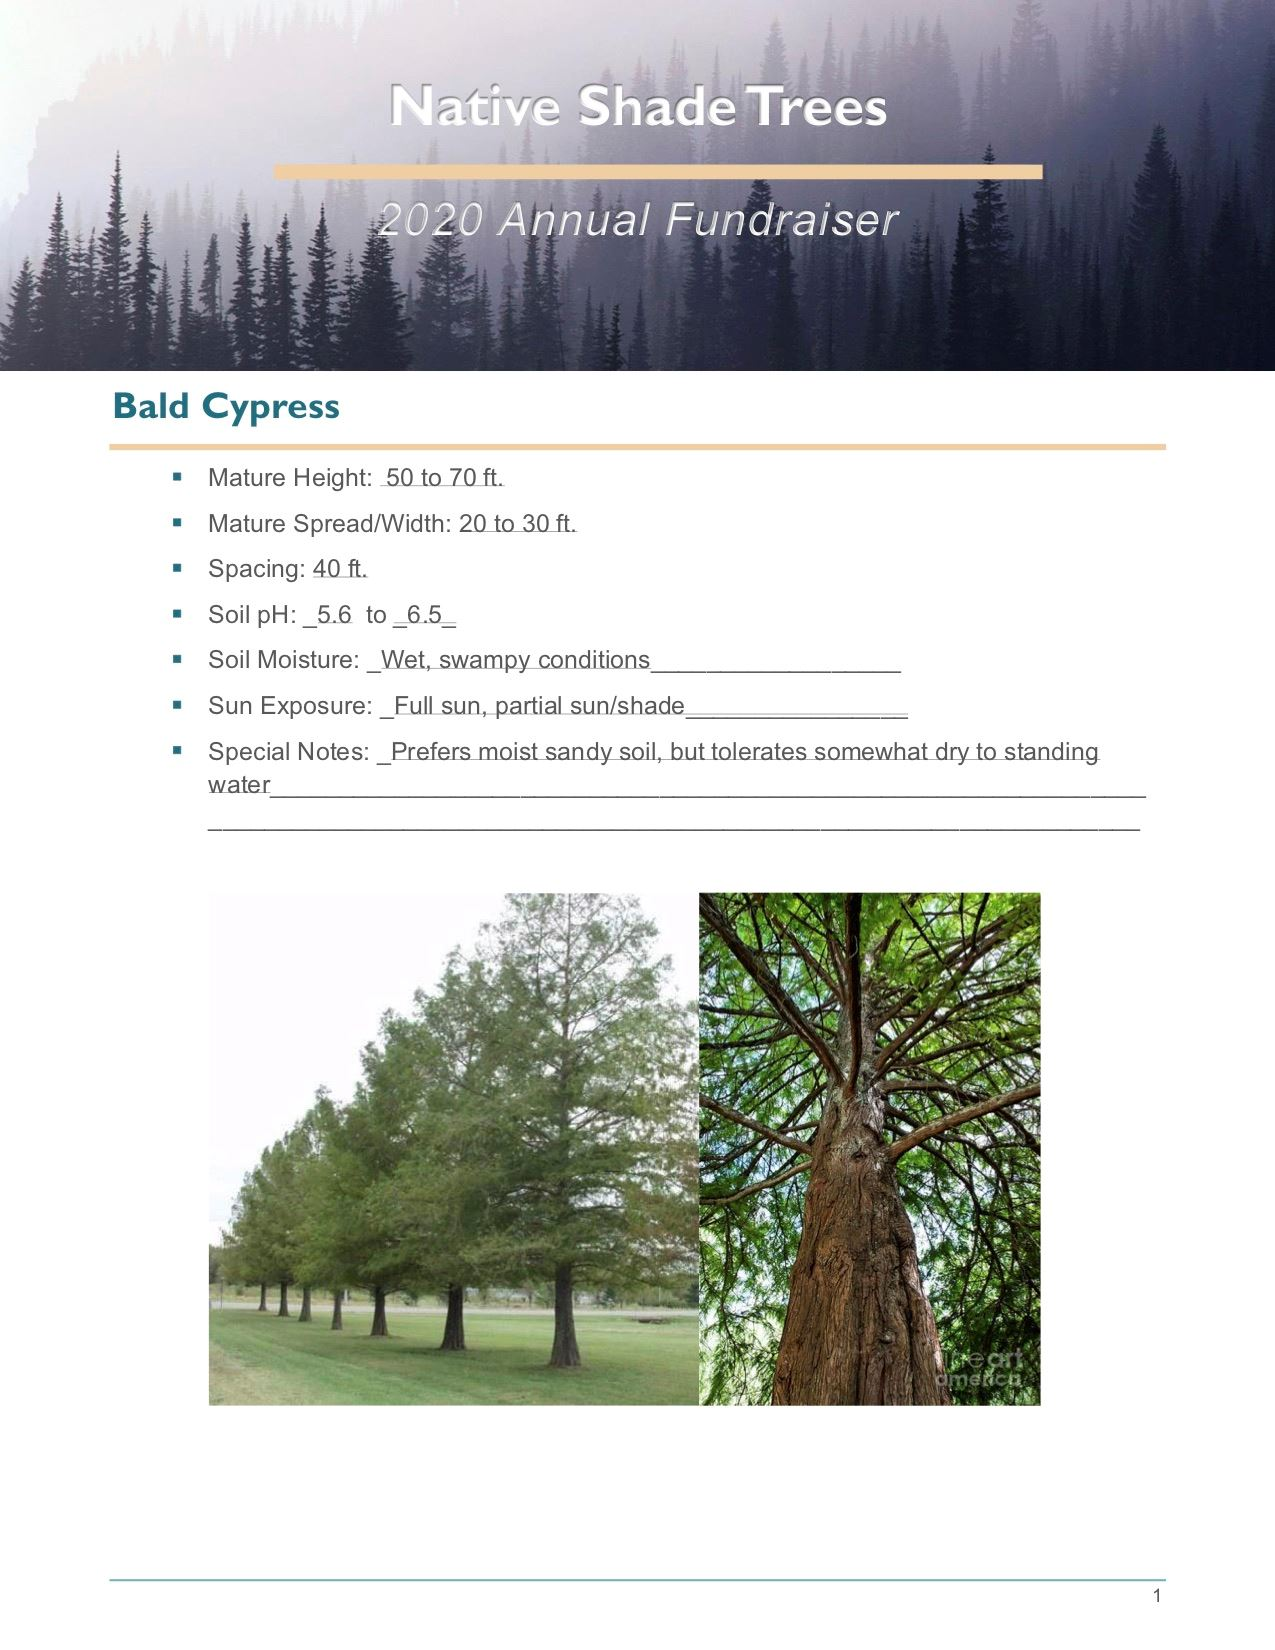 Brochure Template Draft_Native_Shade_Trees2.0(USE)